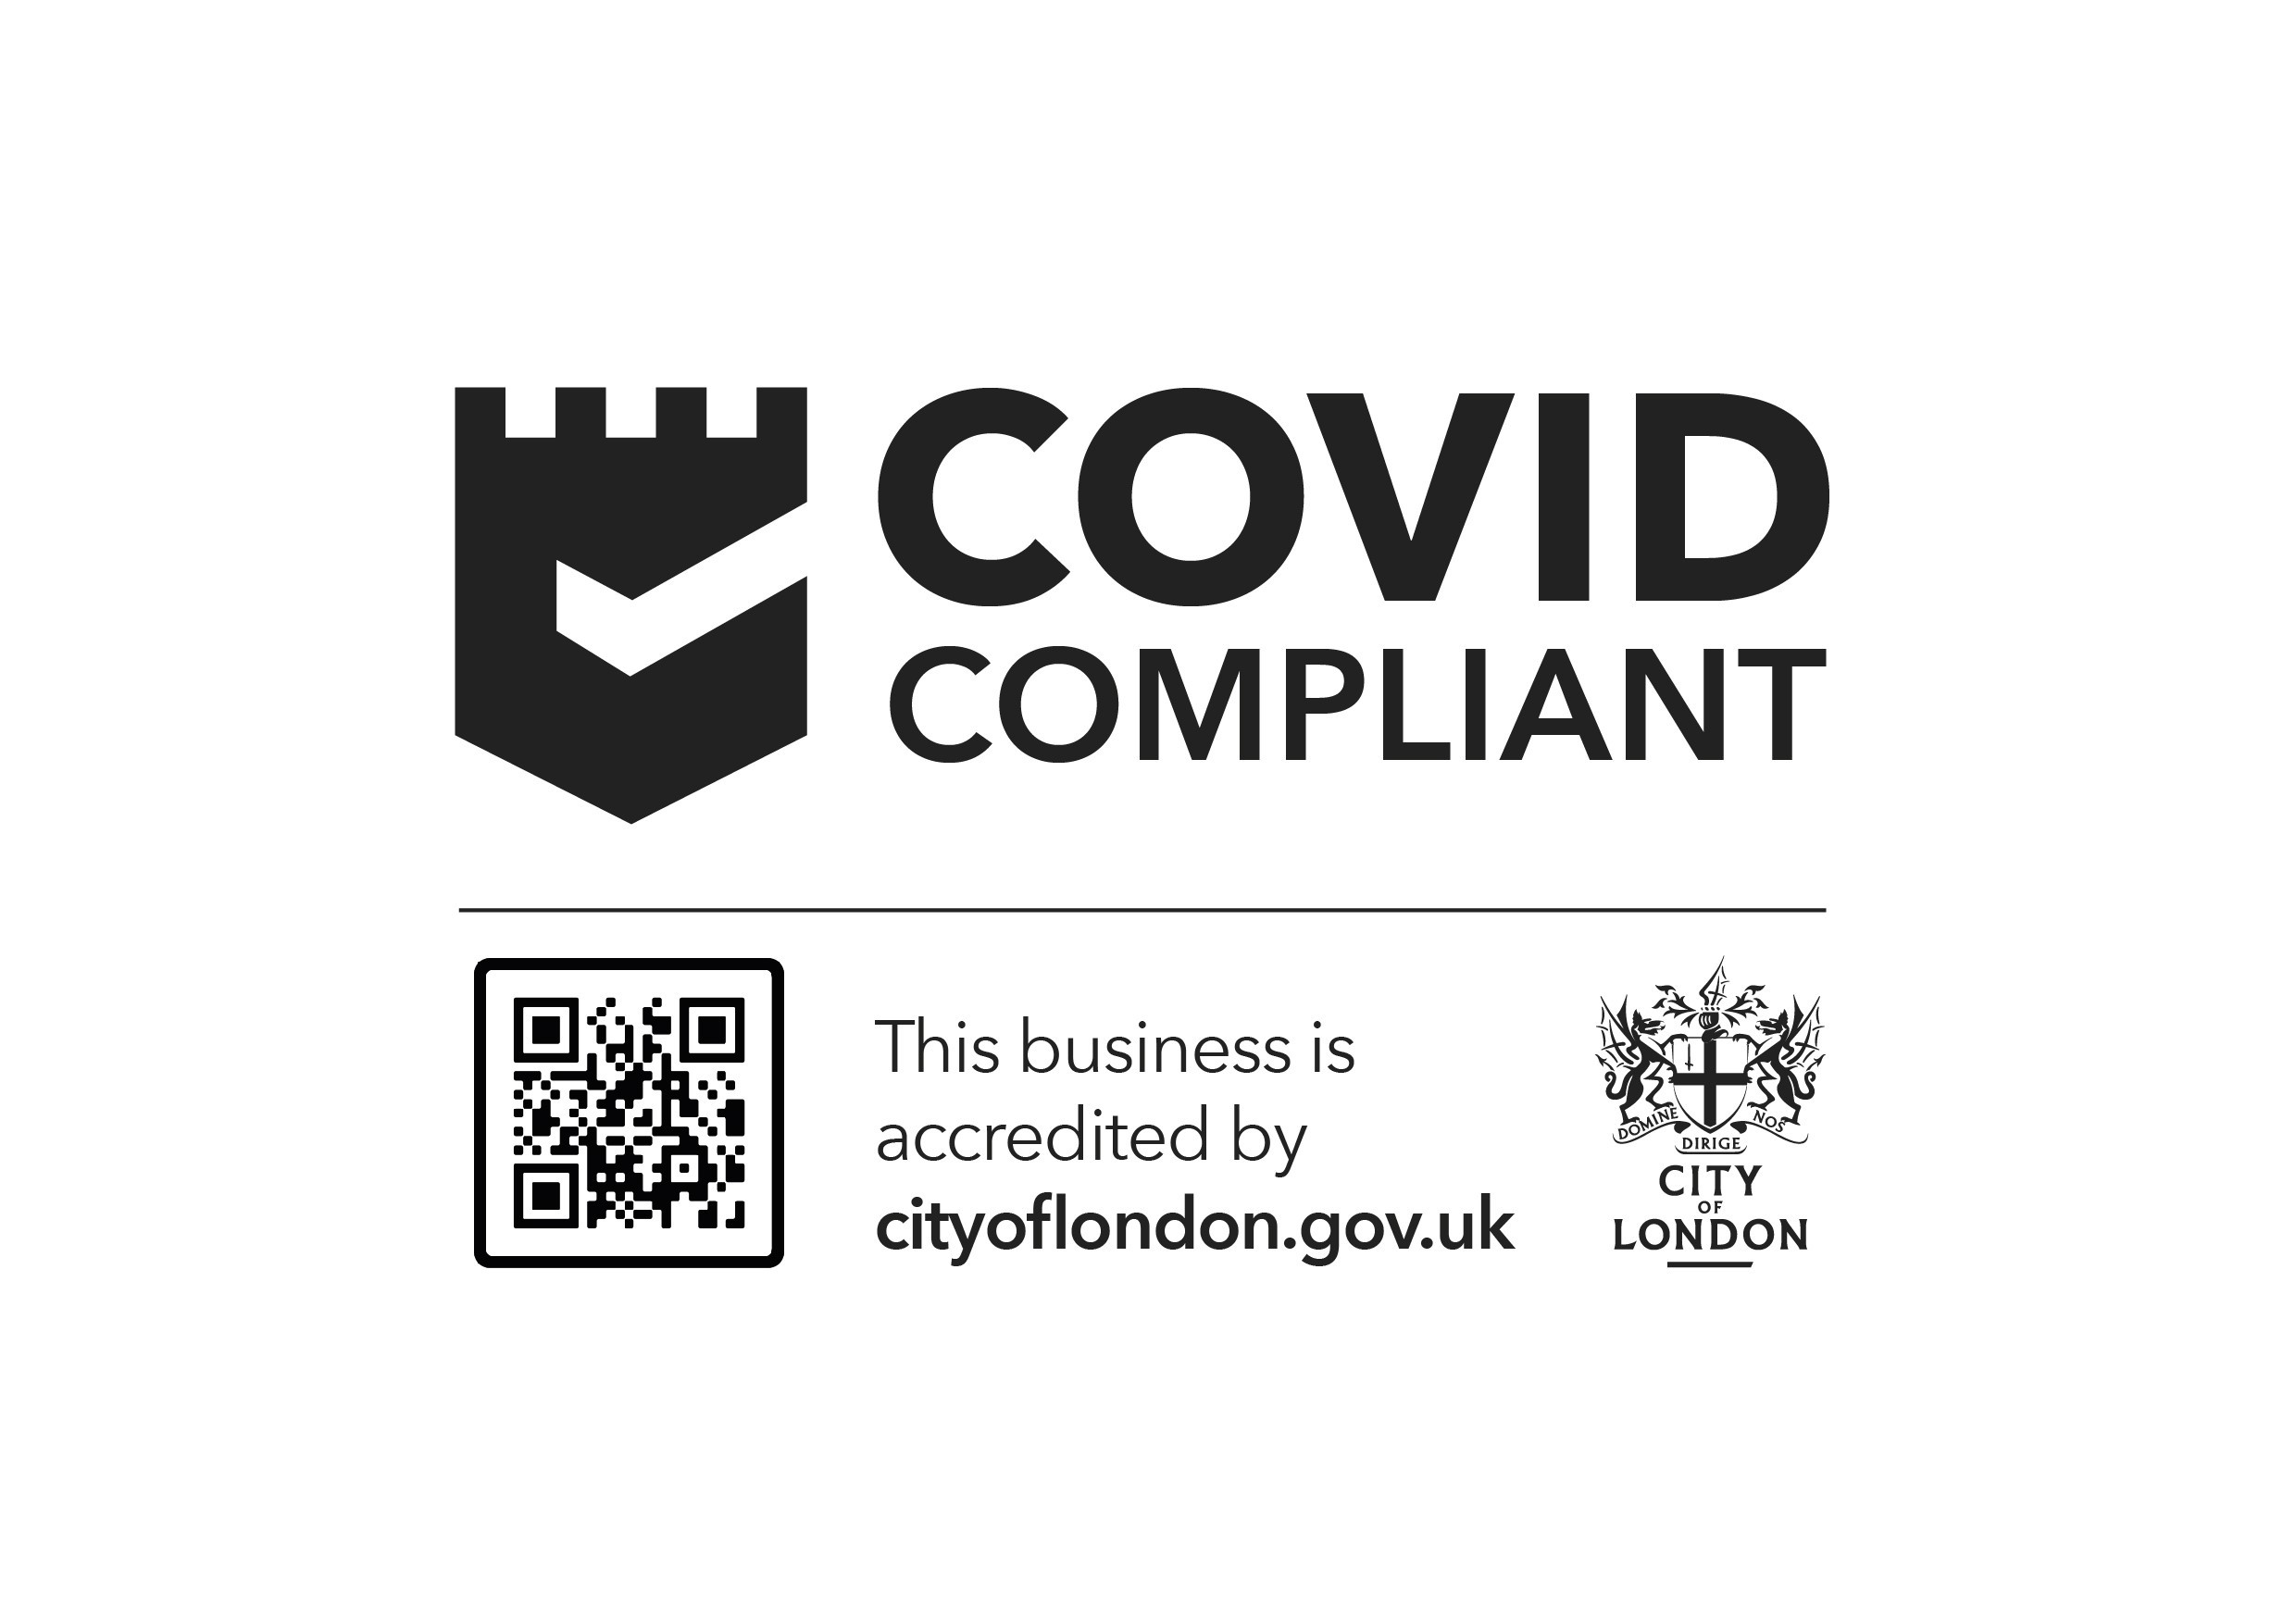 Southwark pilots 'COVID compliant' business accreditation scheme